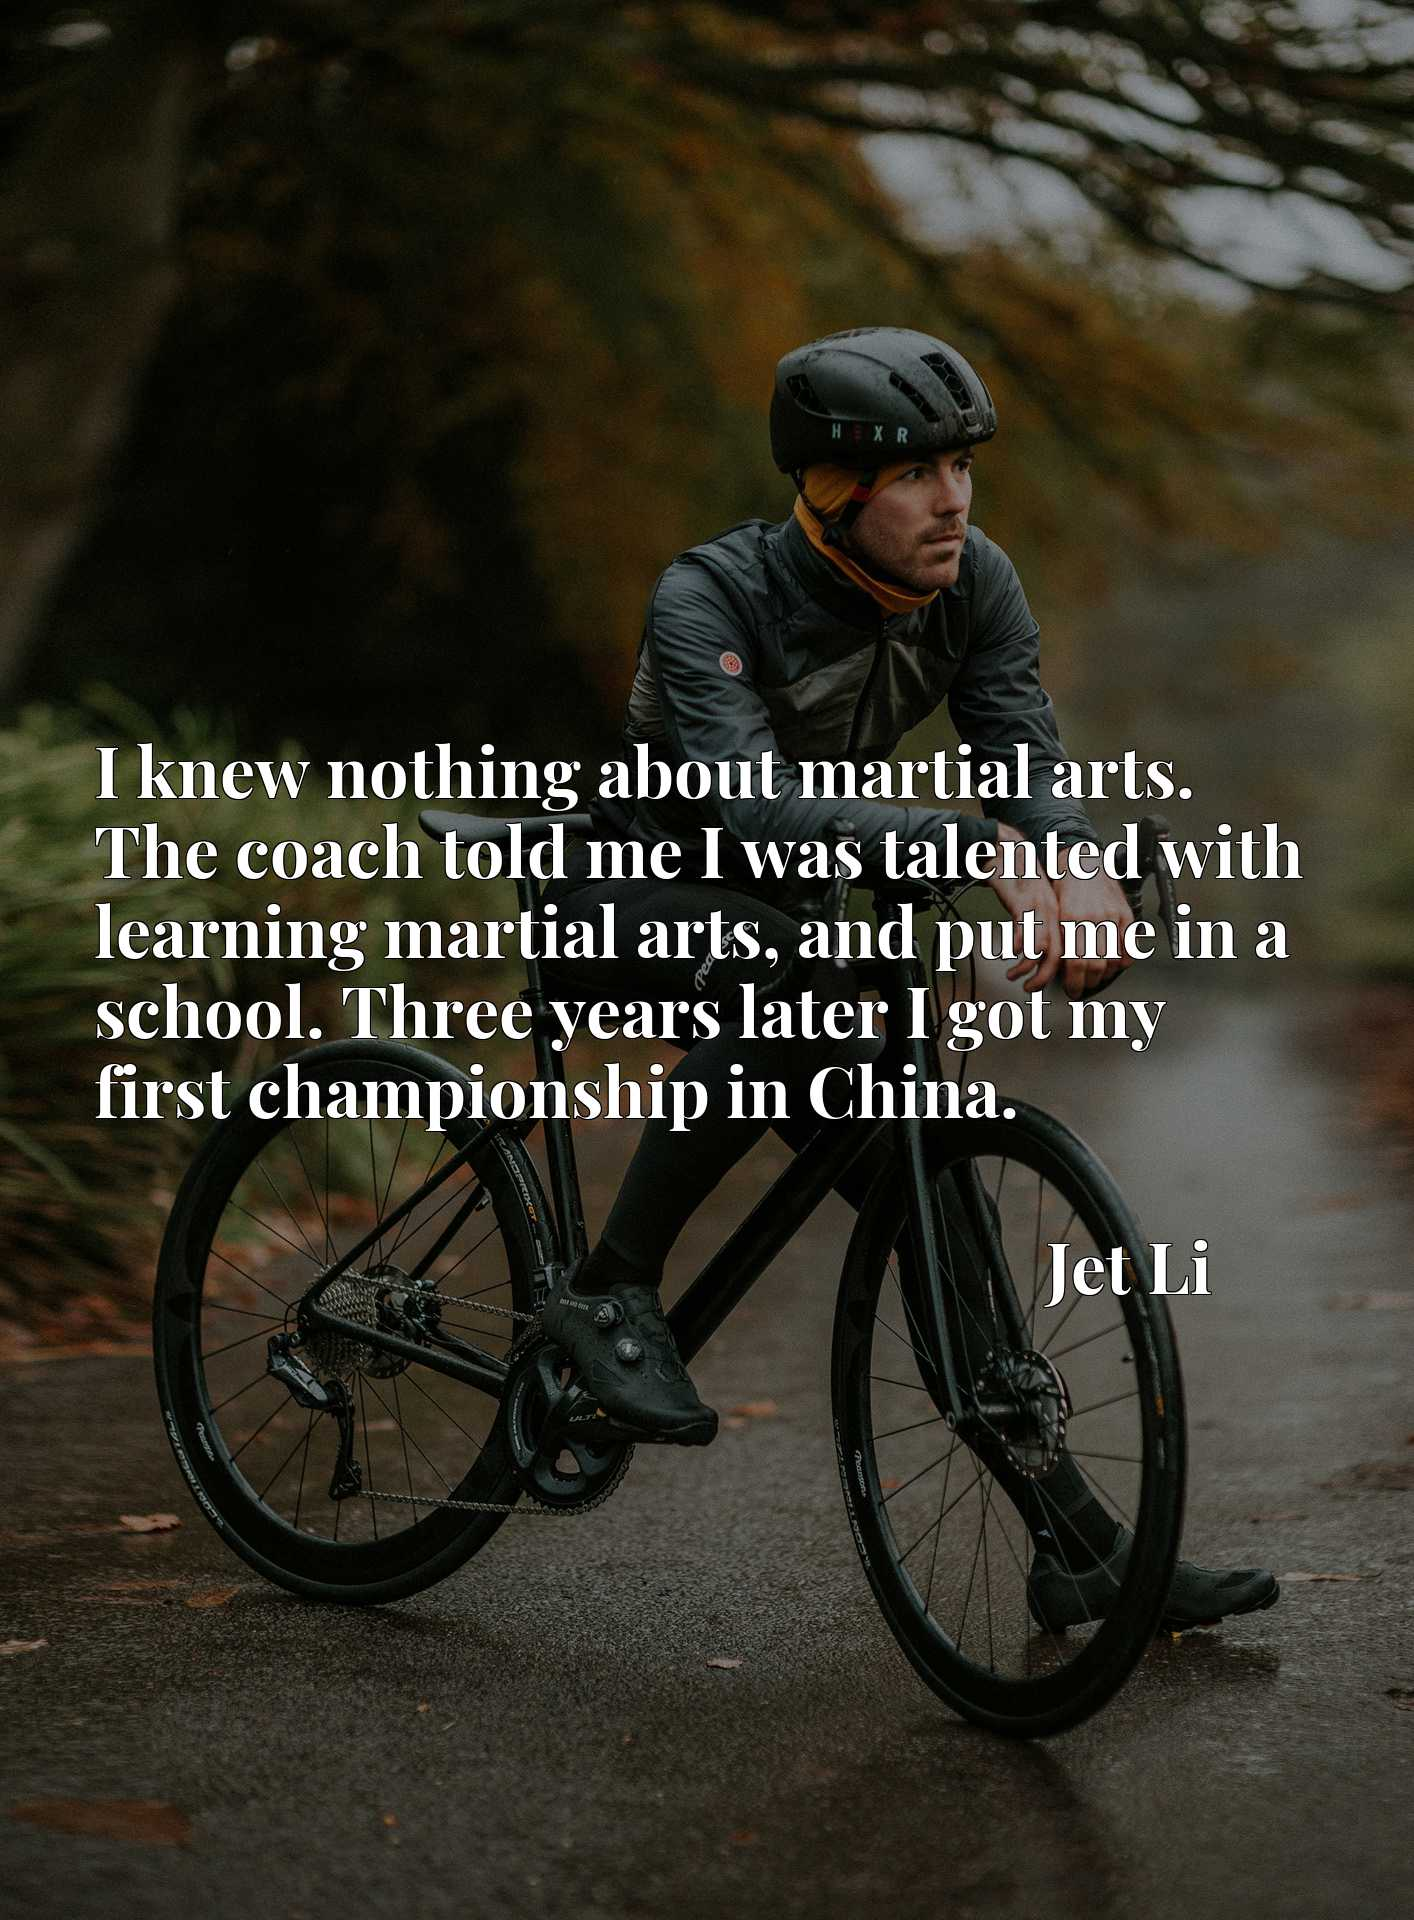 I knew nothing about martial arts. The coach told me I was talented with learning martial arts, and put me in a school. Three years later I got my first championship in China.